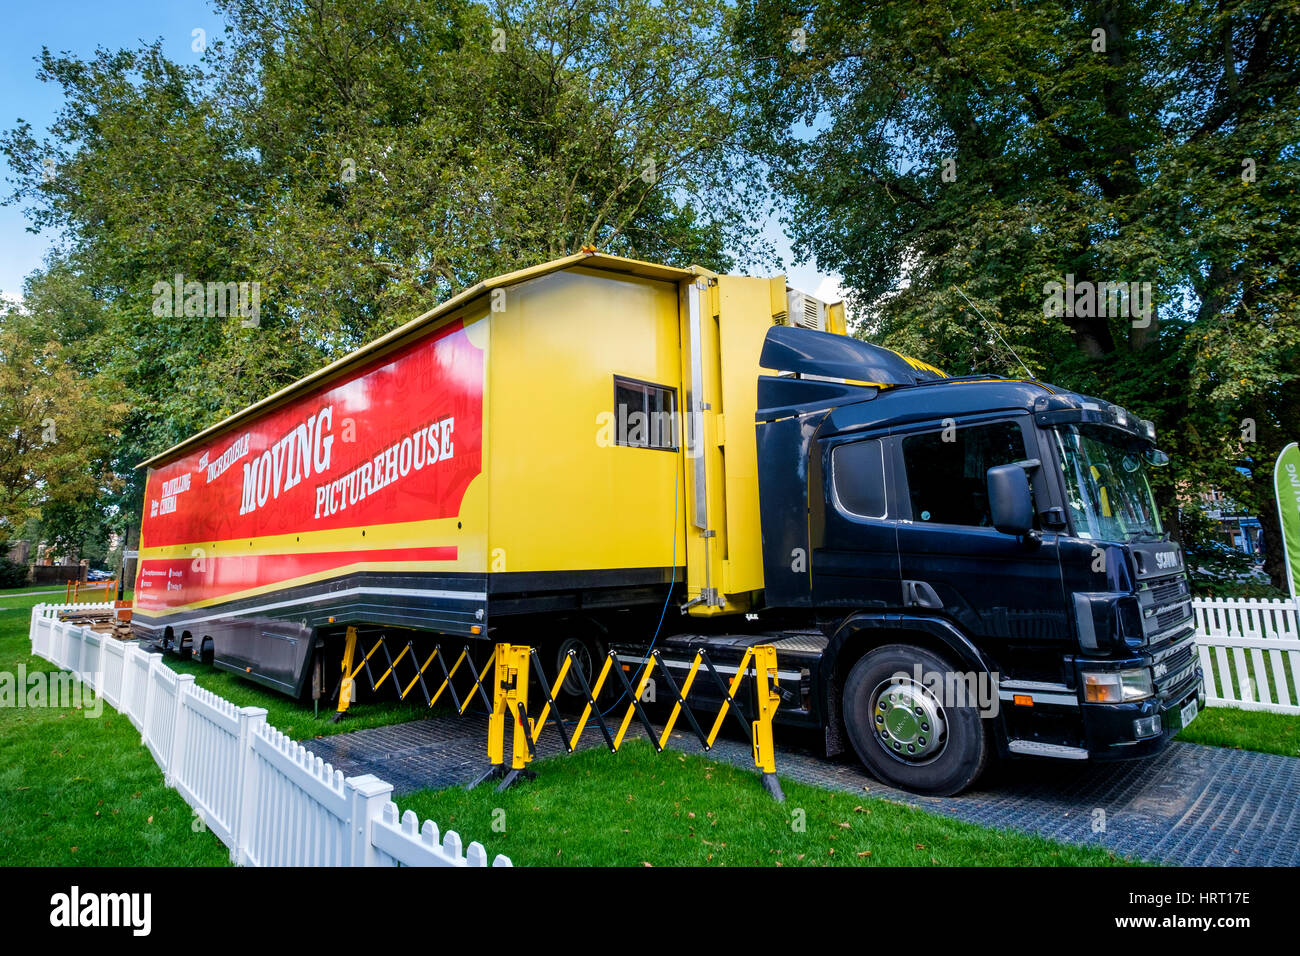 Travelling Cinema in an articulated lorry. The incredible Moving Picturehouse parked on Ealing Green London - Stock Image